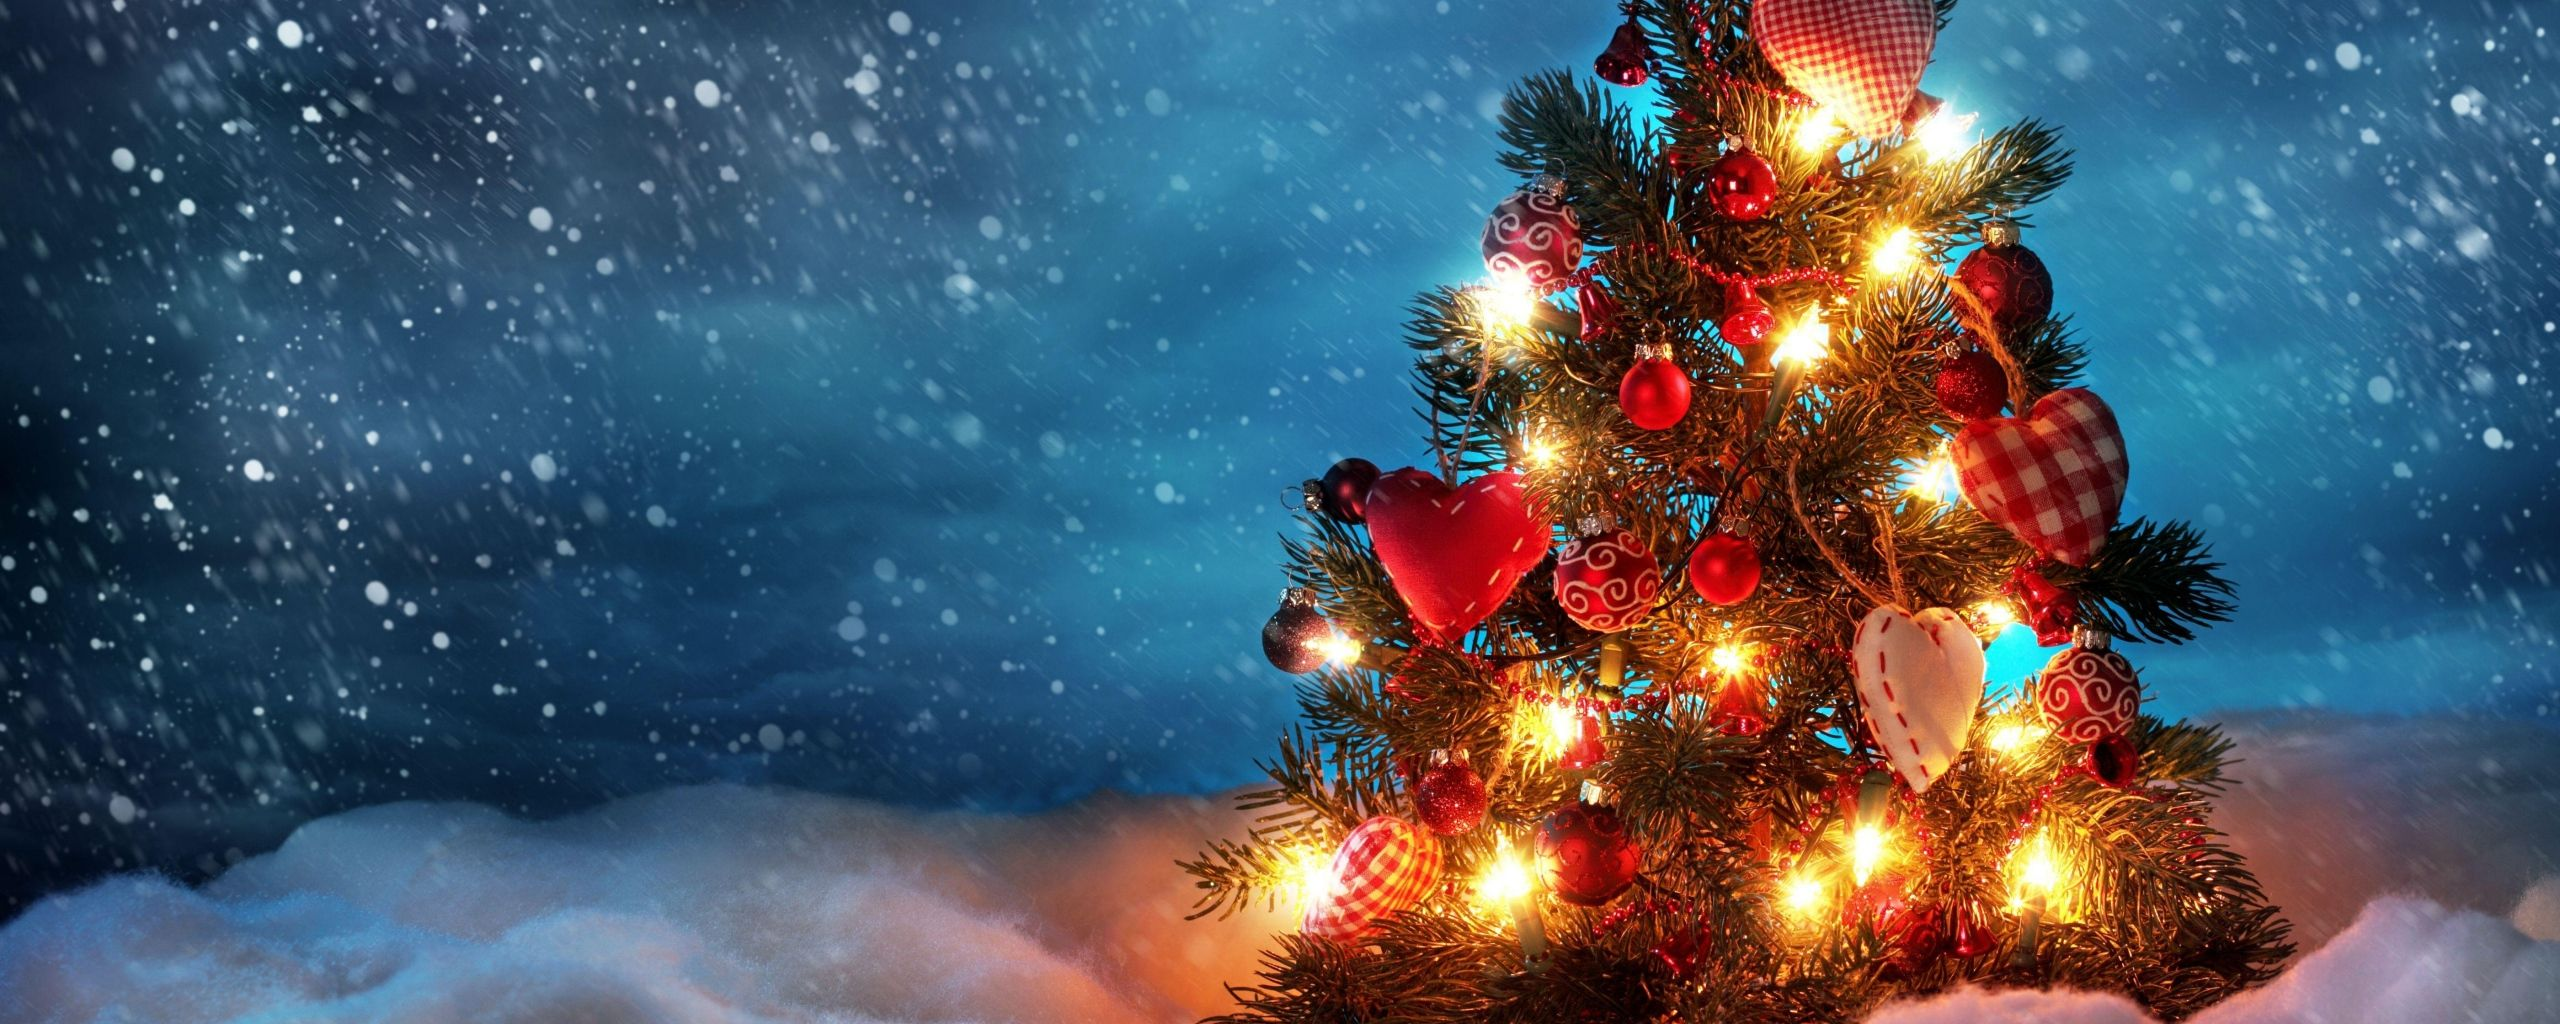 2560x1024 Christmas Wallpaper Dual Monitor – Festival Collections